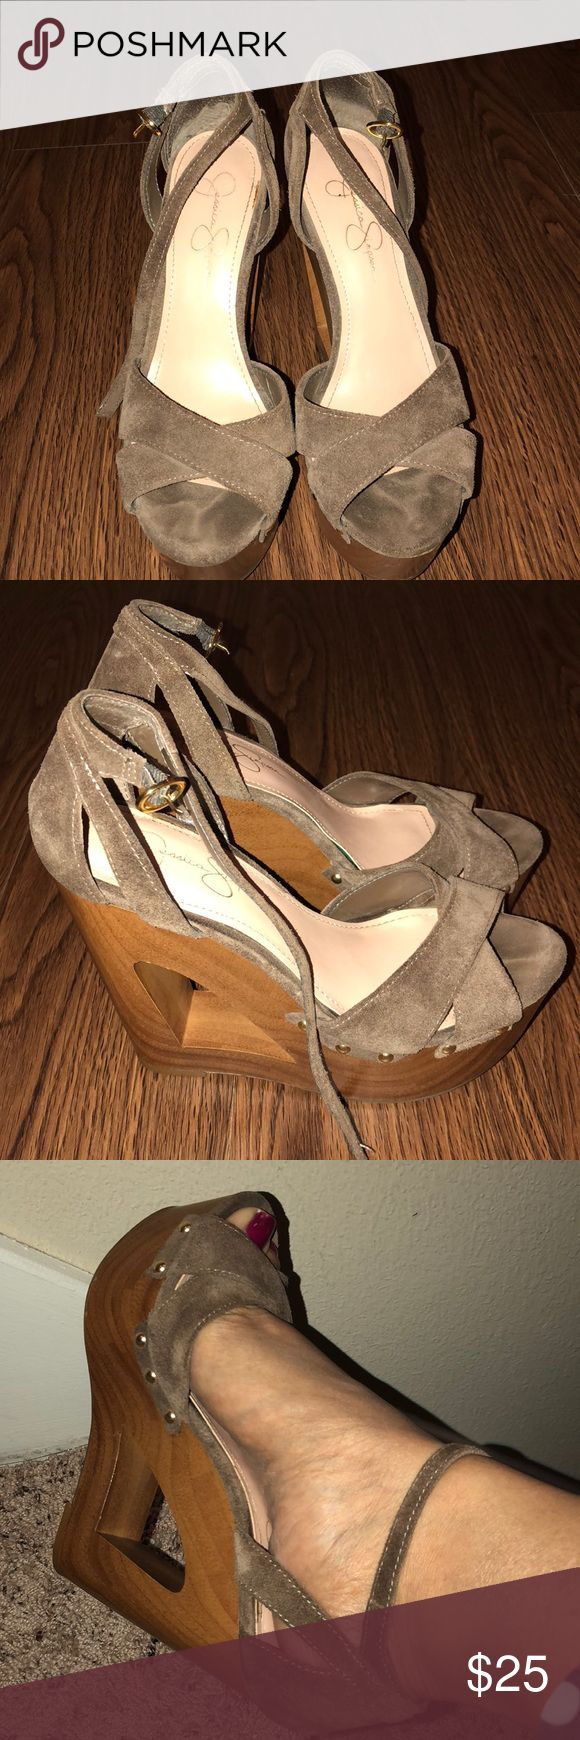 Jessica Simpson wedges Cute Jessica Simpson Wedges. Loves the color and studs and heel! Jessica Simpson Shoes Wedges